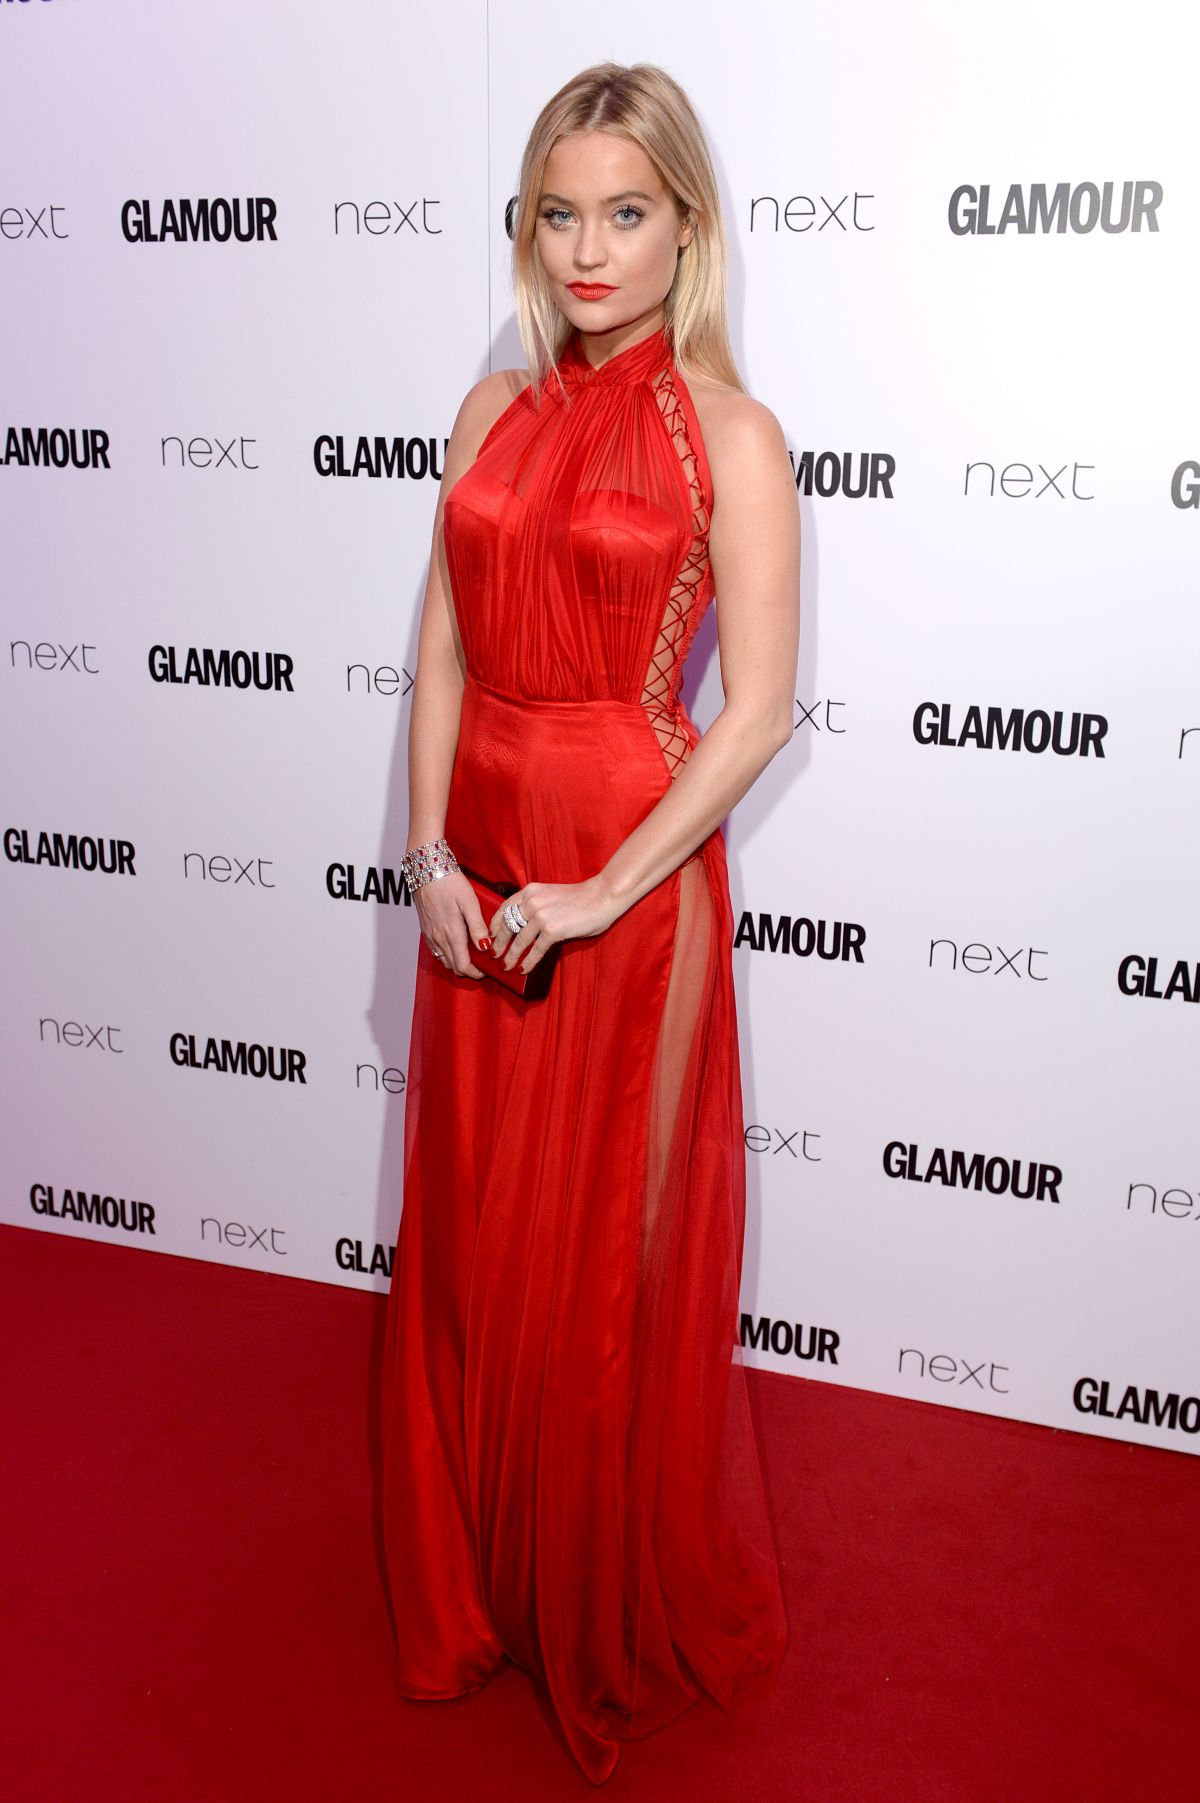 301f00214613 Laura Whitmore At Glamour Women of the Year Awards In London - Celebzz